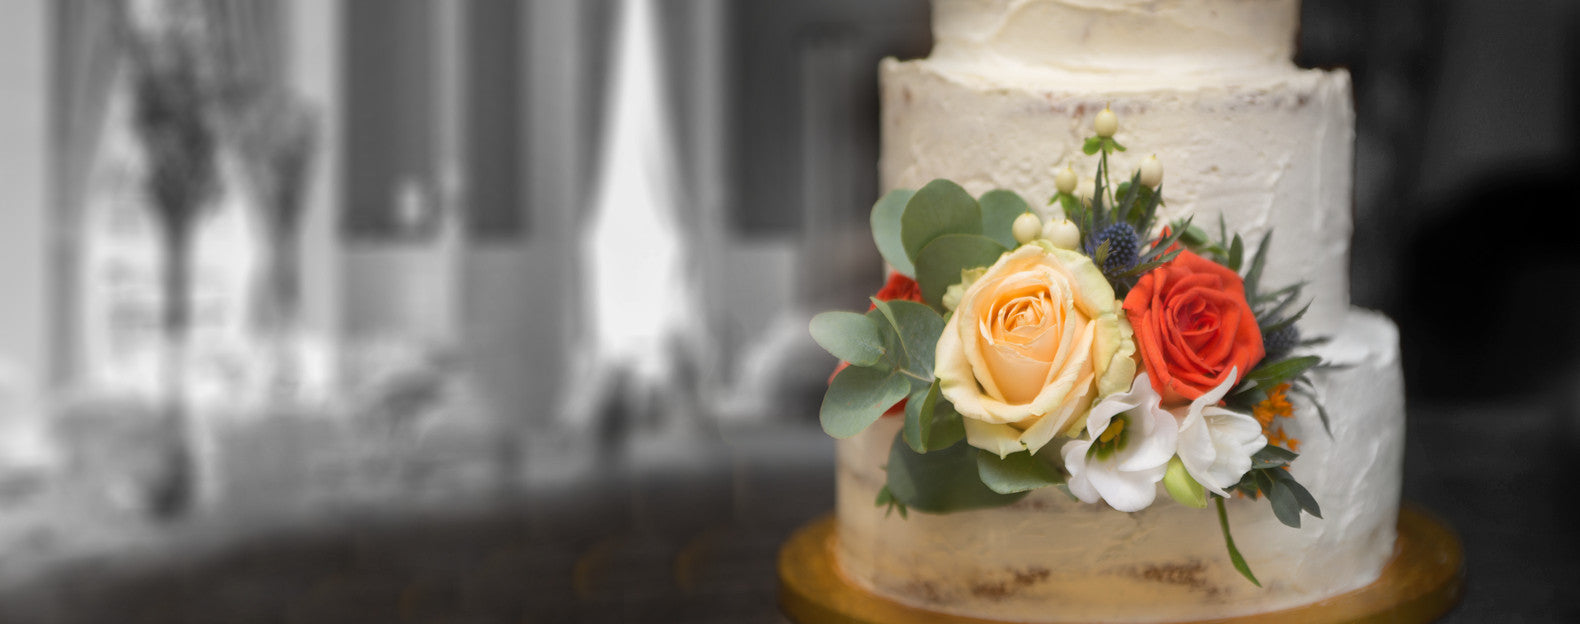 WE MAKE BEAUTIFUL AND DELICIOUS WEDDING CAKES